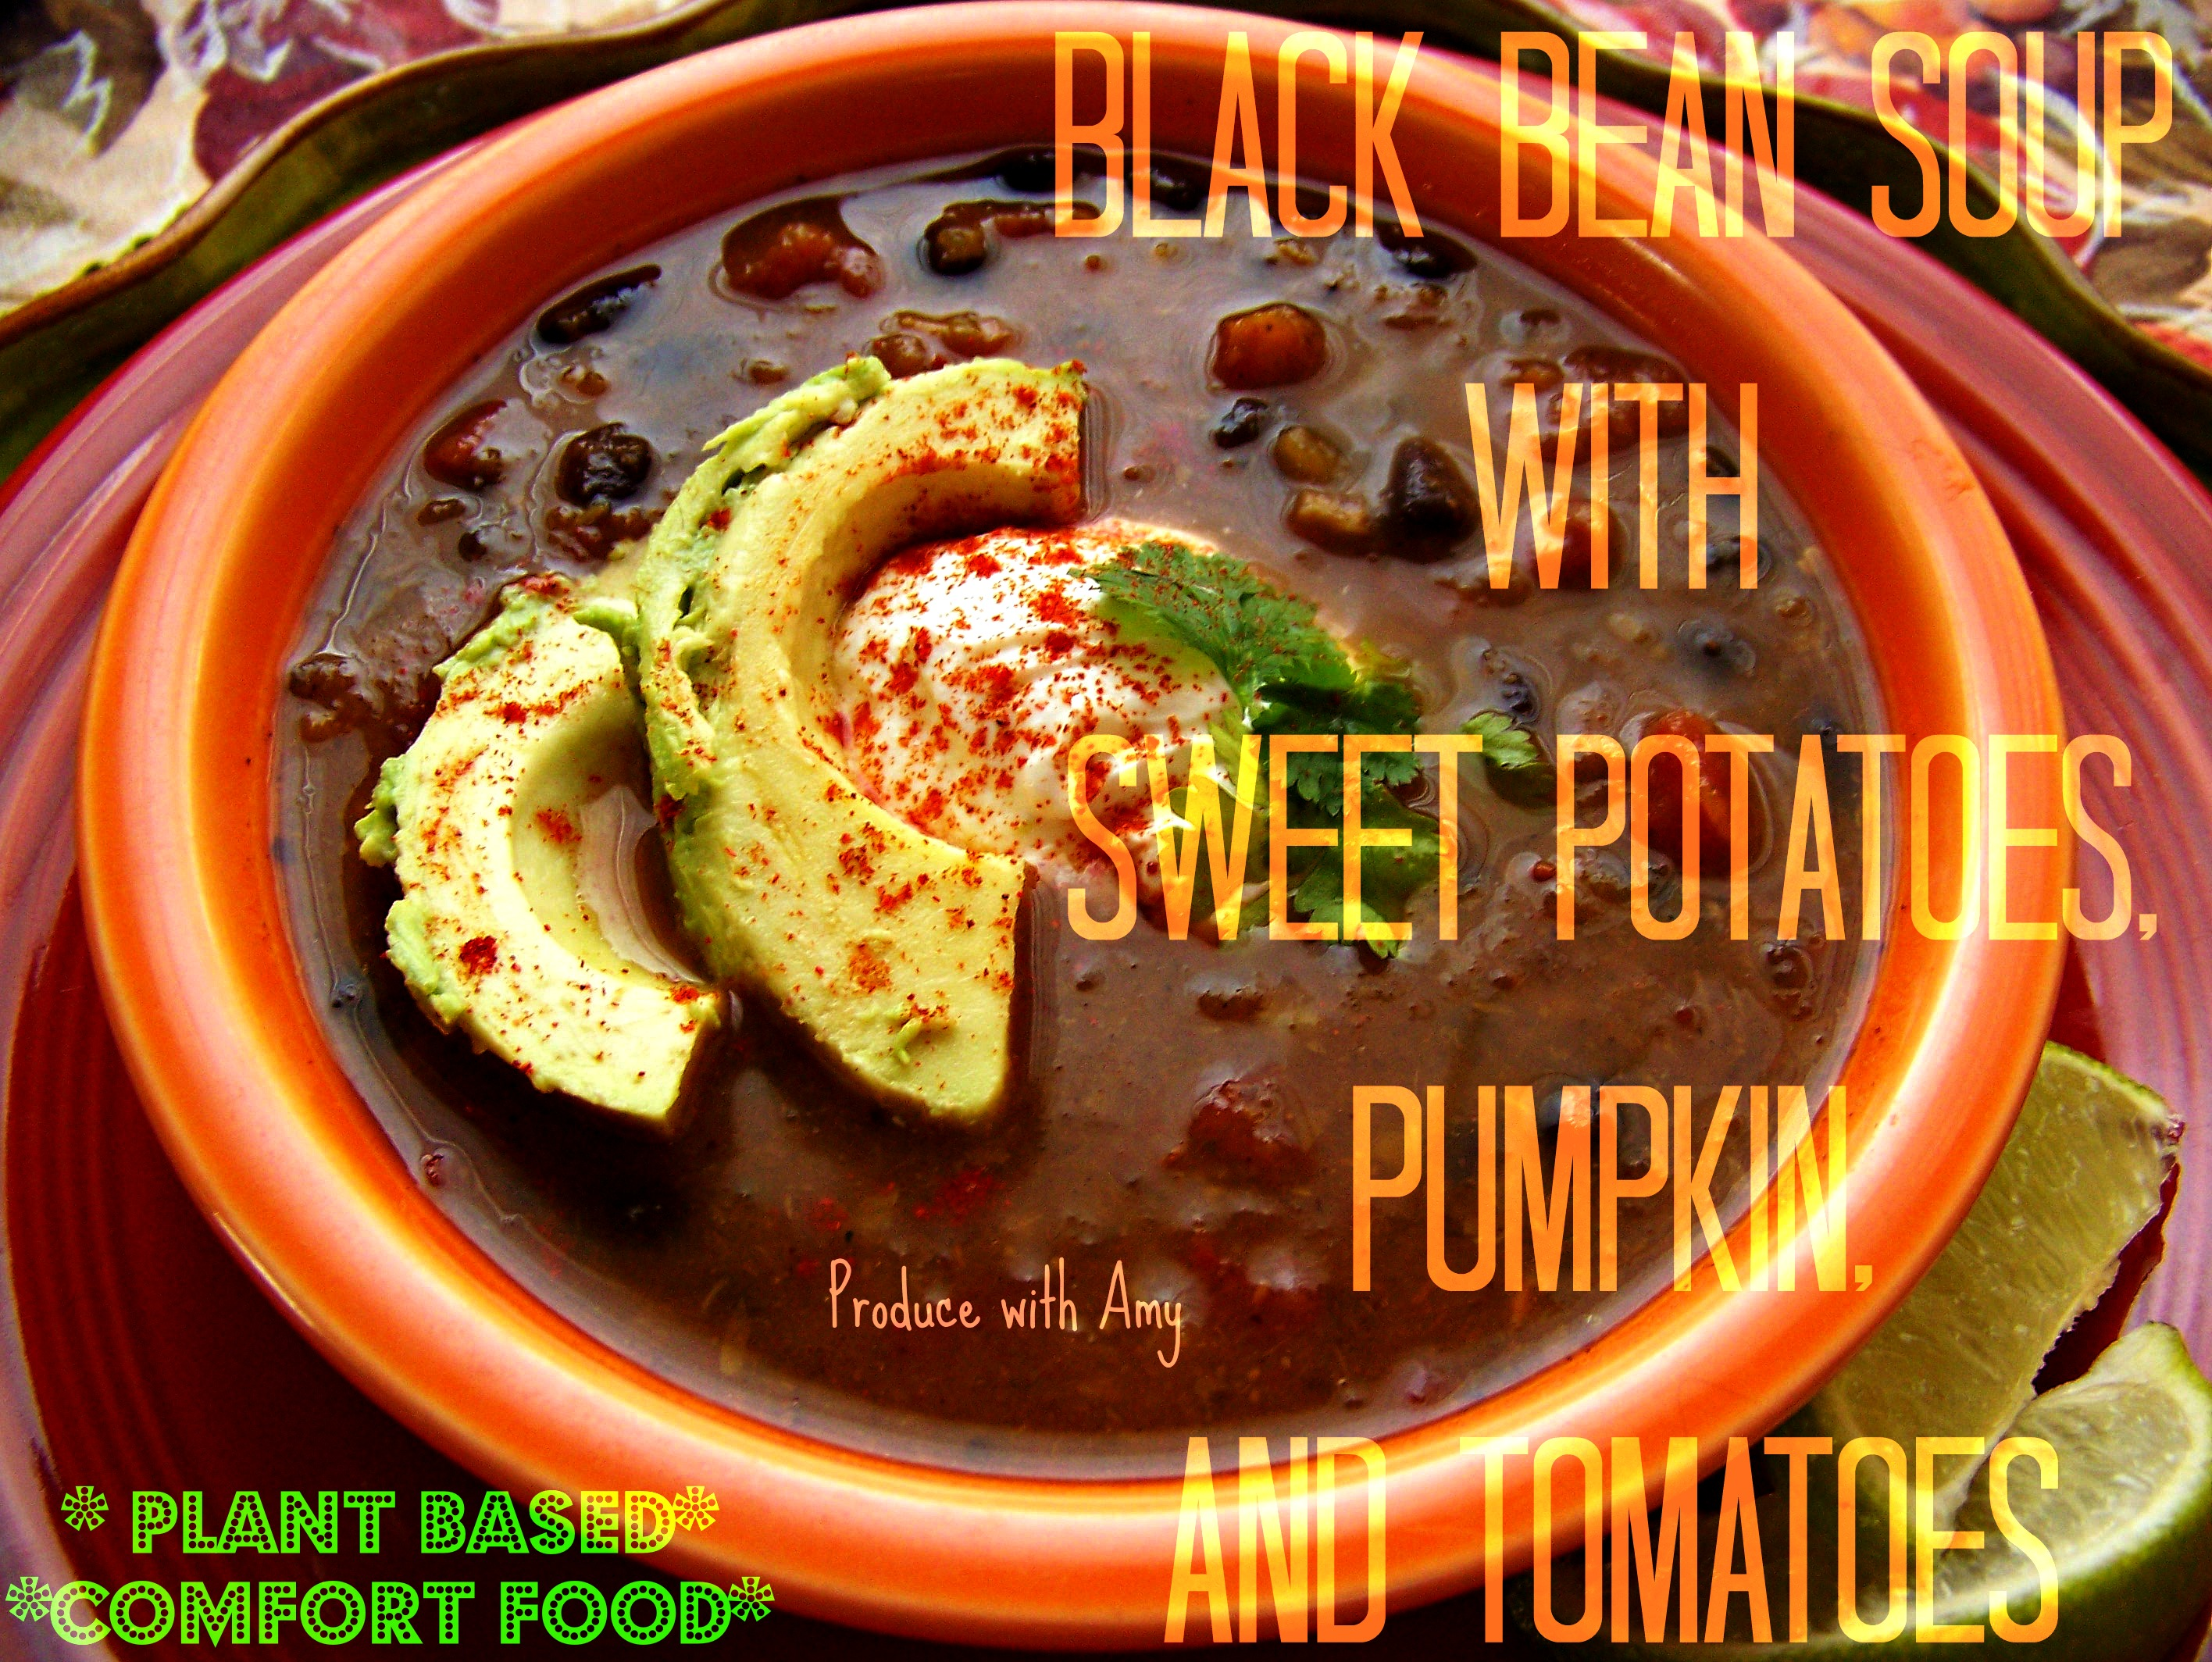 Black Bean Soup with Sweet Potatoes, Pumpkin, and Tomatoes | Produce ...